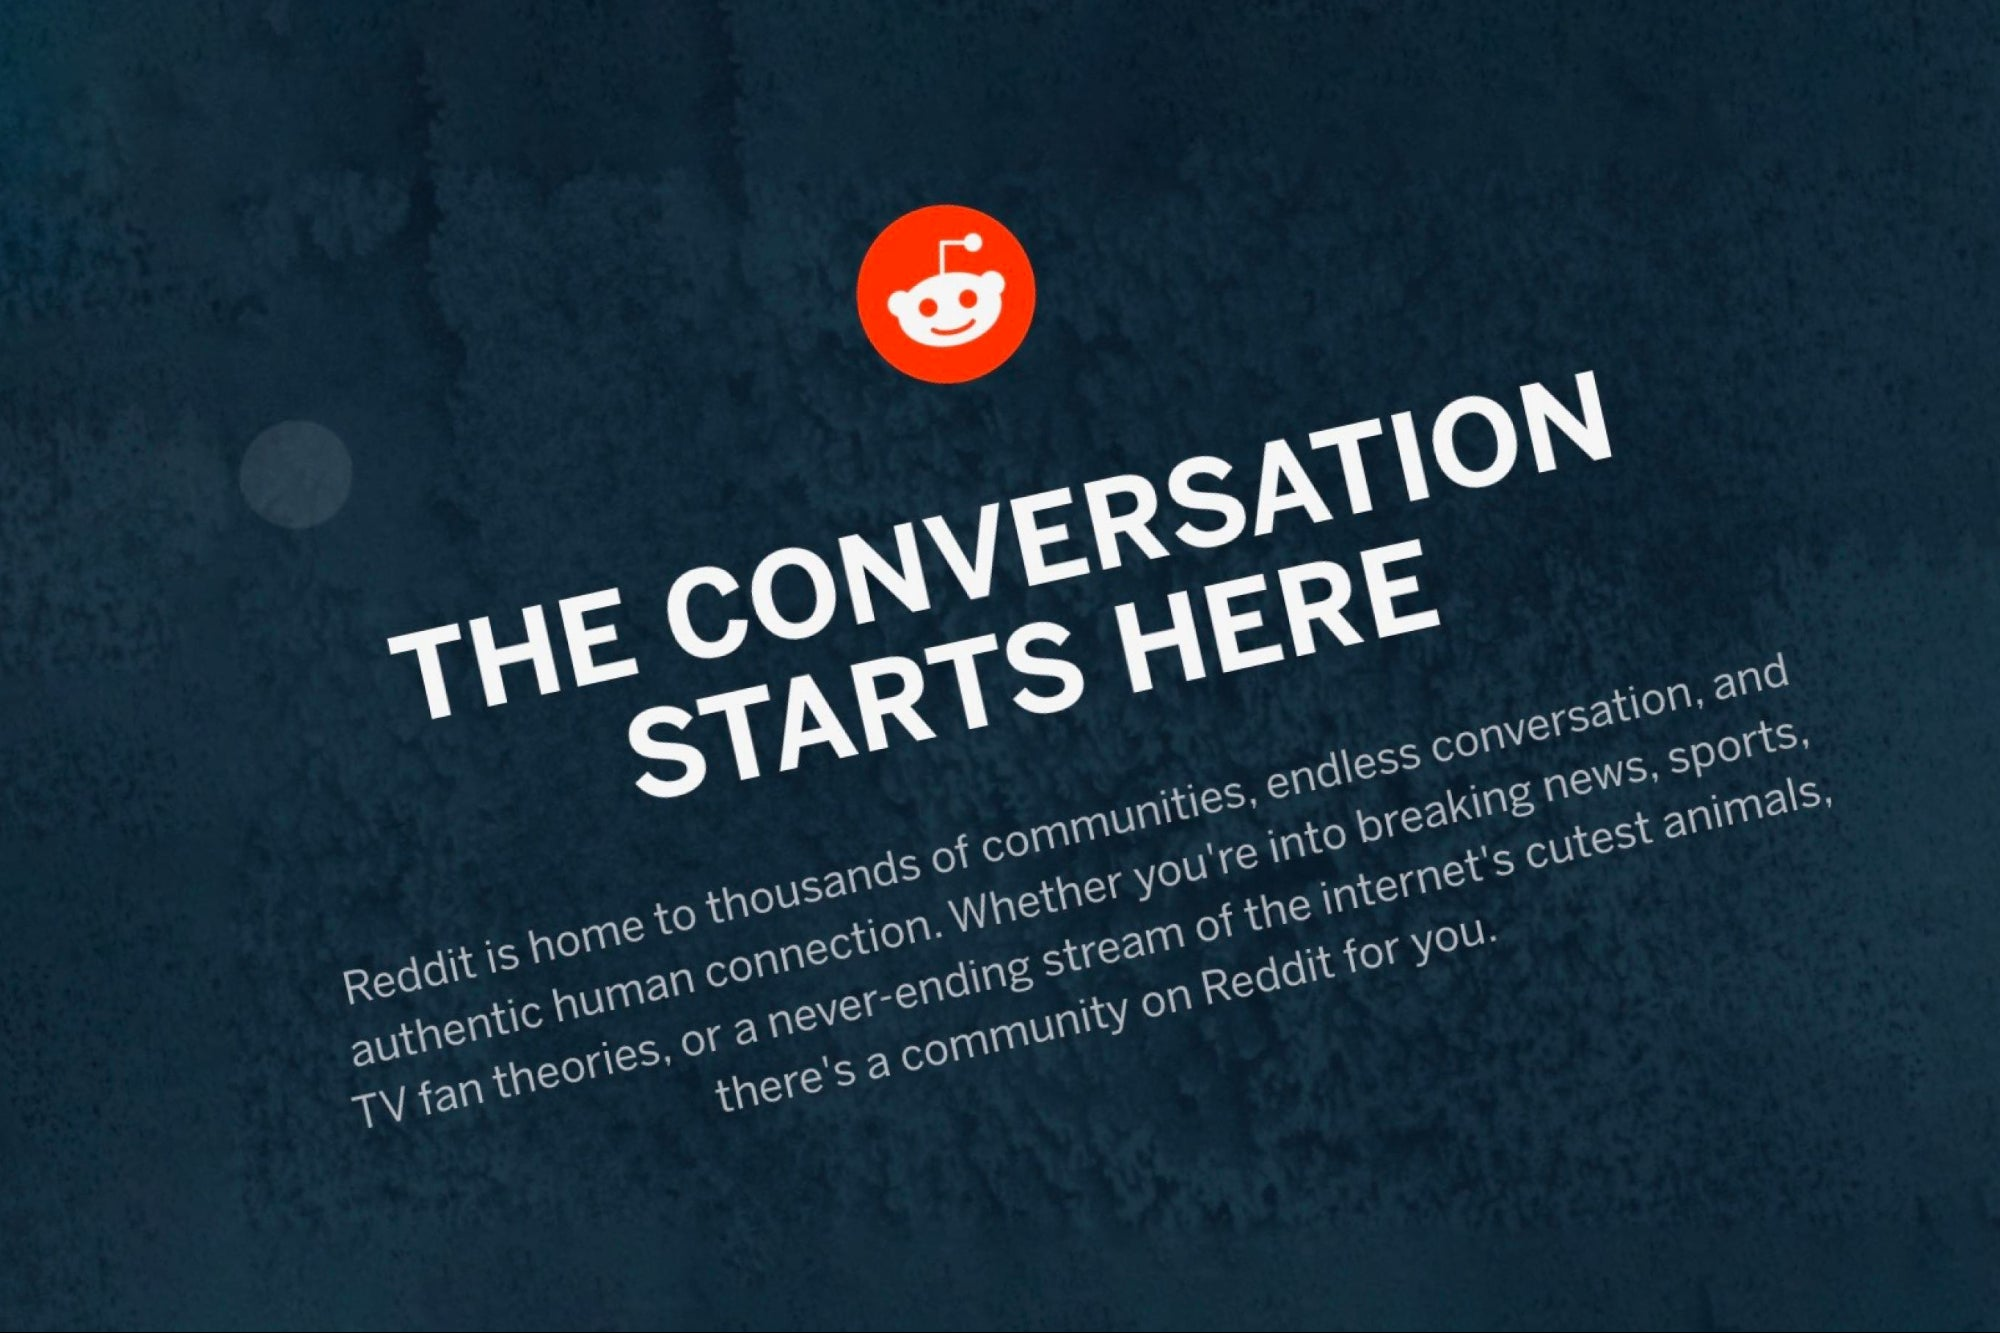 Reddit CEO Vows to Fight Racism on the Site, But Users Remain Doubtful